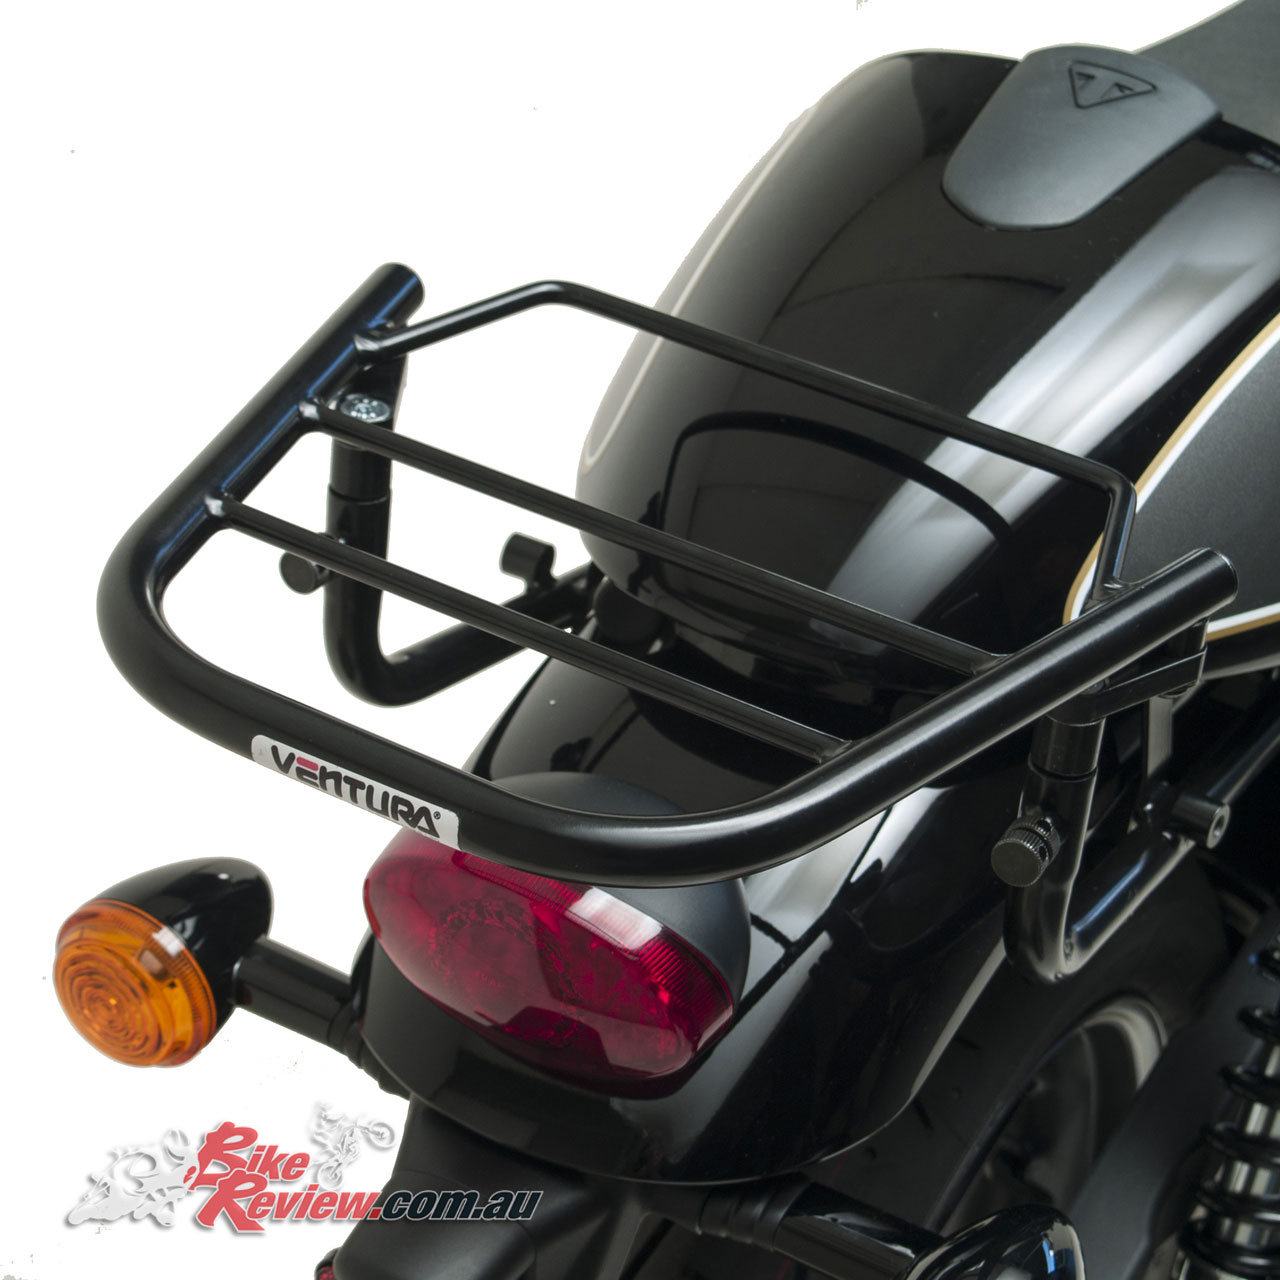 Ventura Luggage - Street Cup with Rear Rack